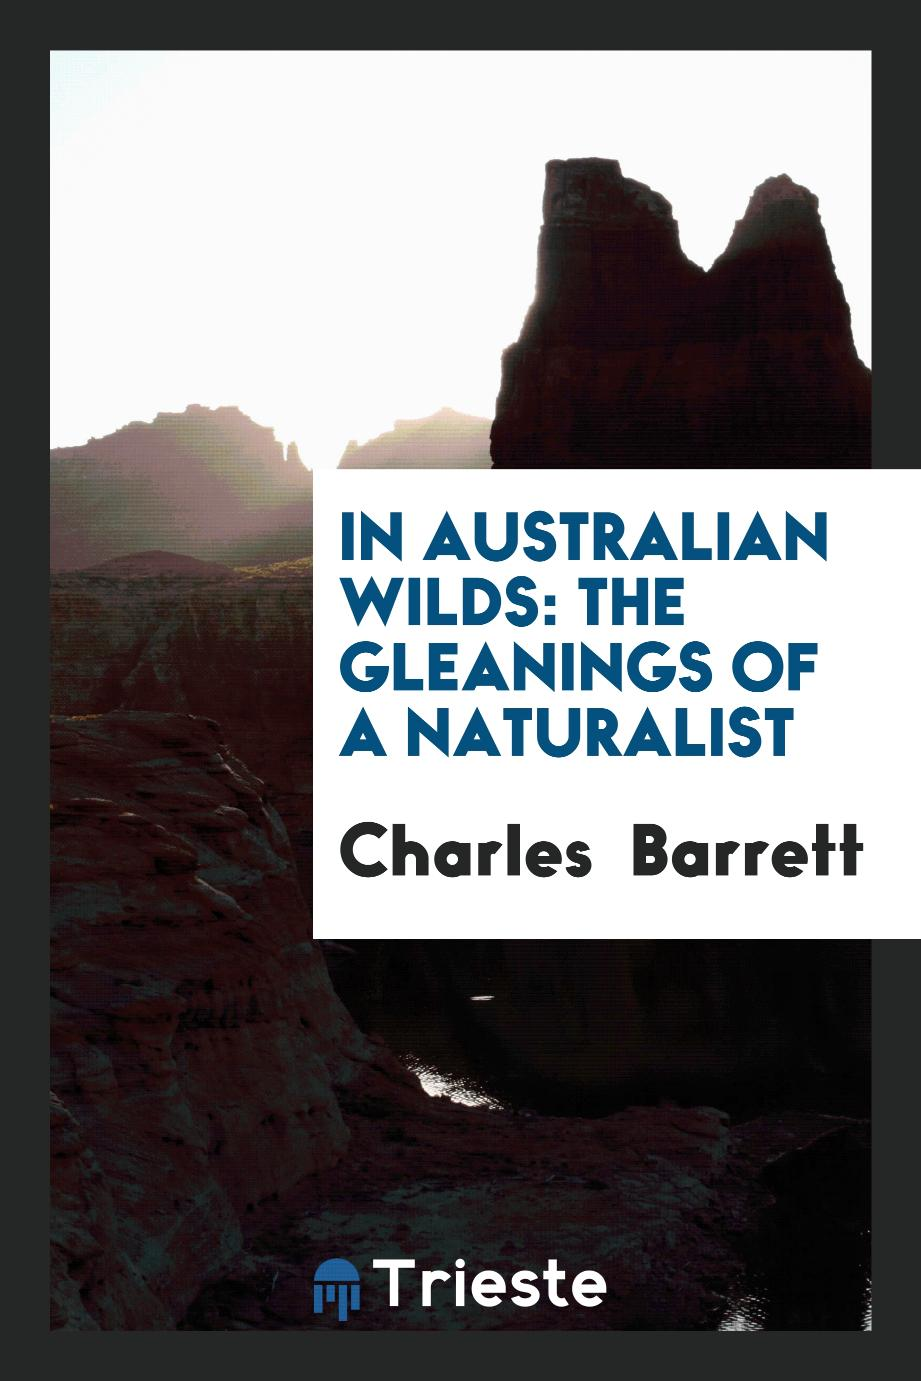 In Australian wilds: the gleanings of a naturalist